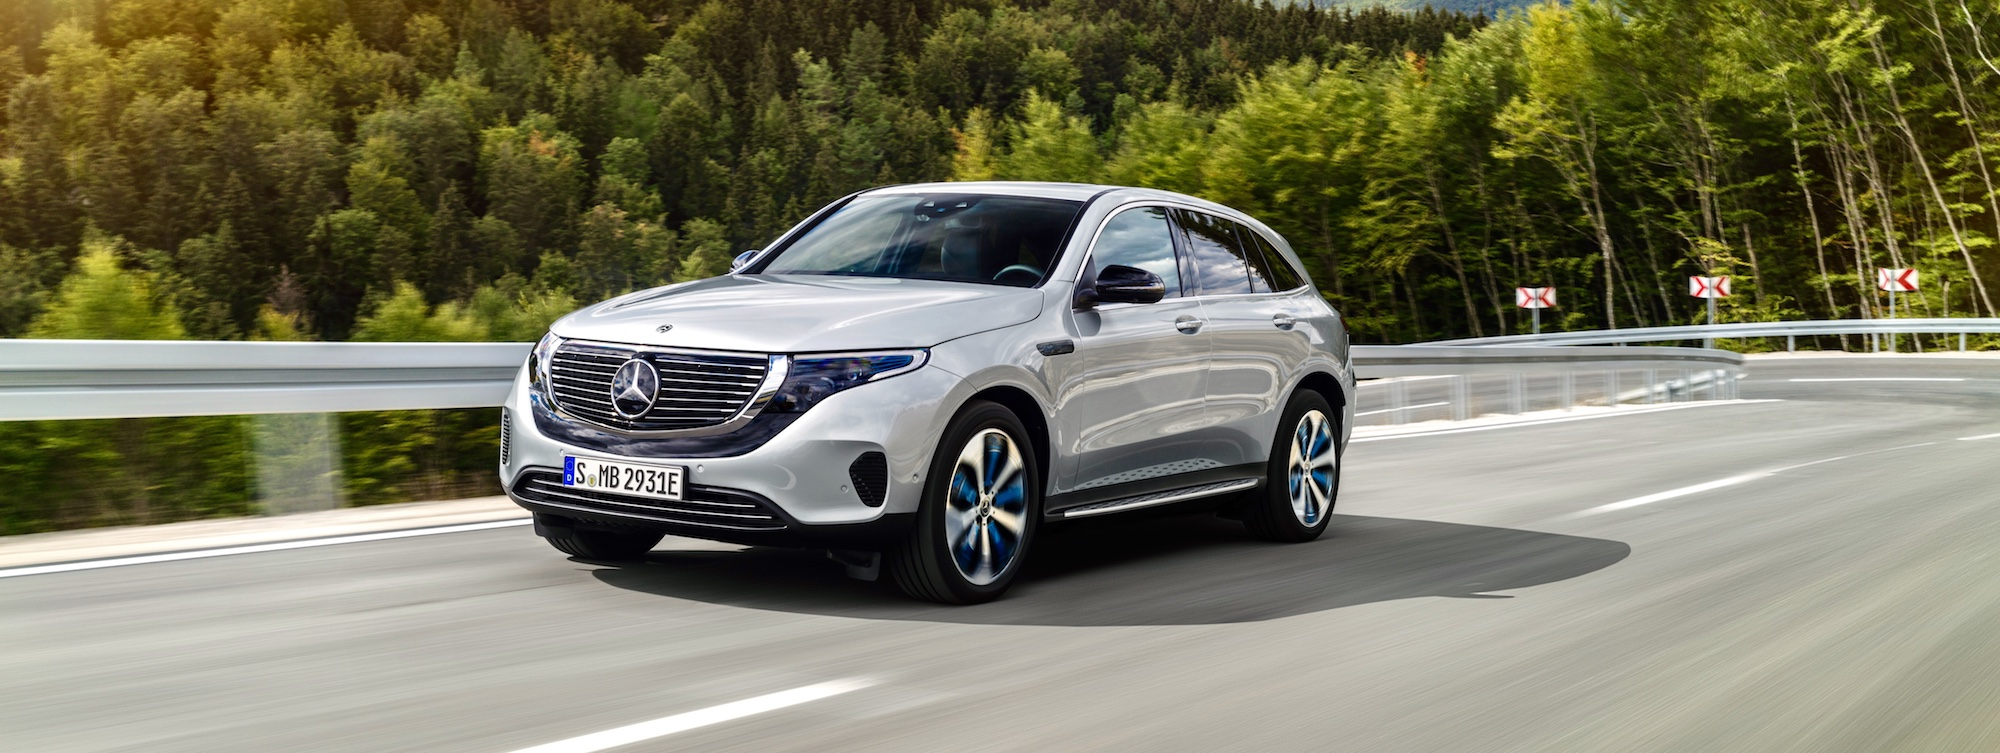 Mercedes-Benz EQC 400 4MATIC: All-Electric SUV For The Upscale Masses